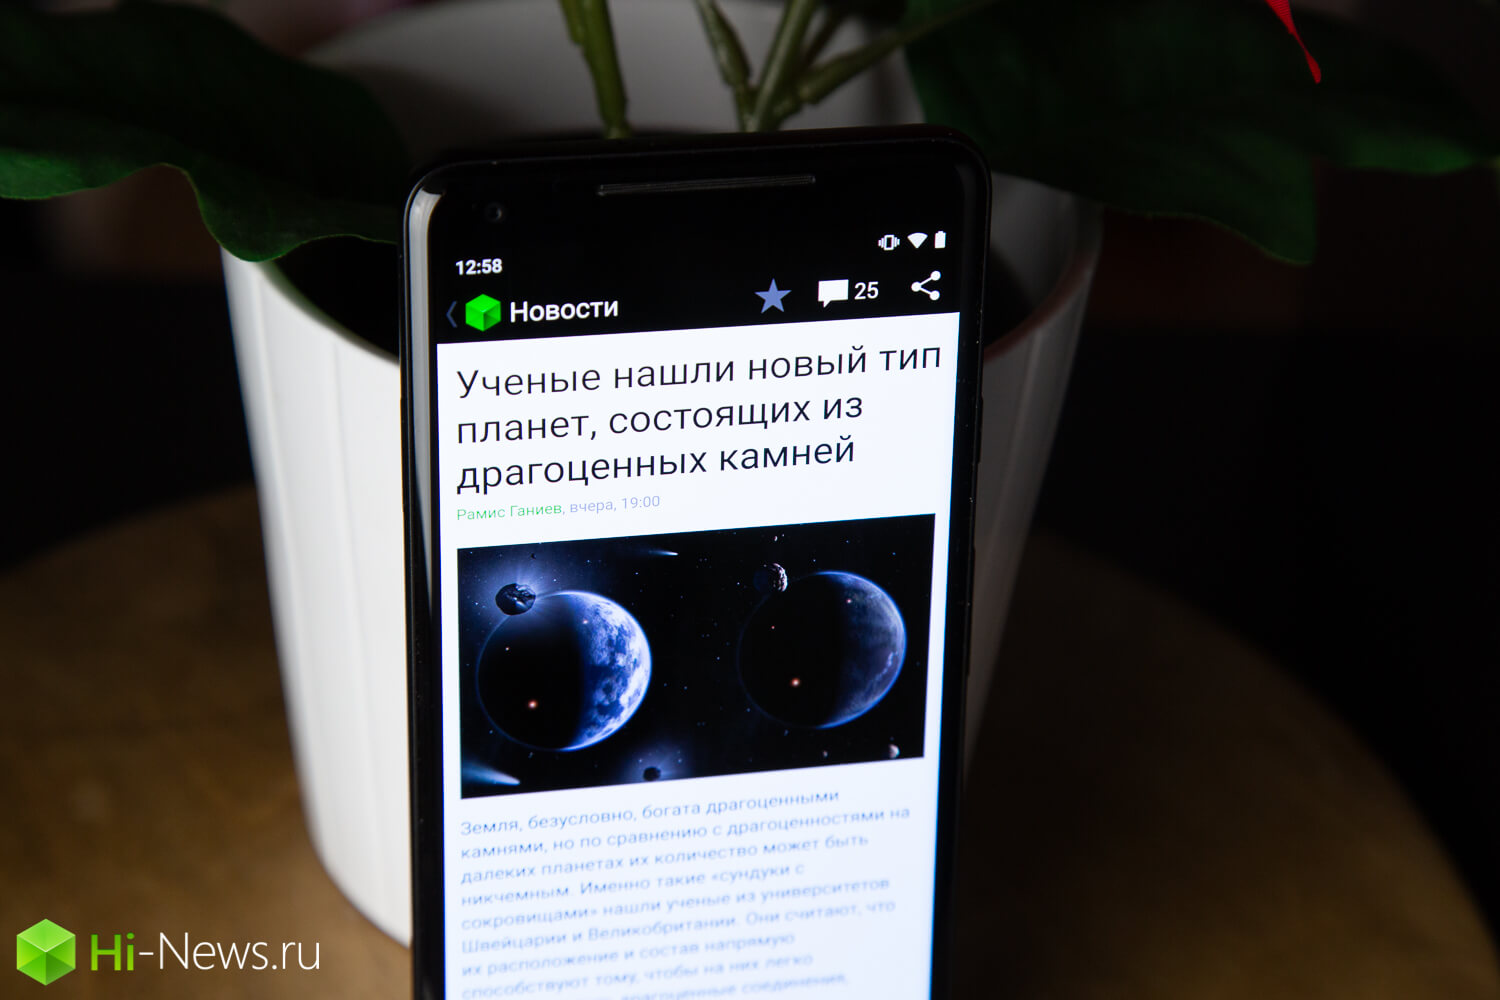 How to fix the app Hi-News.ru